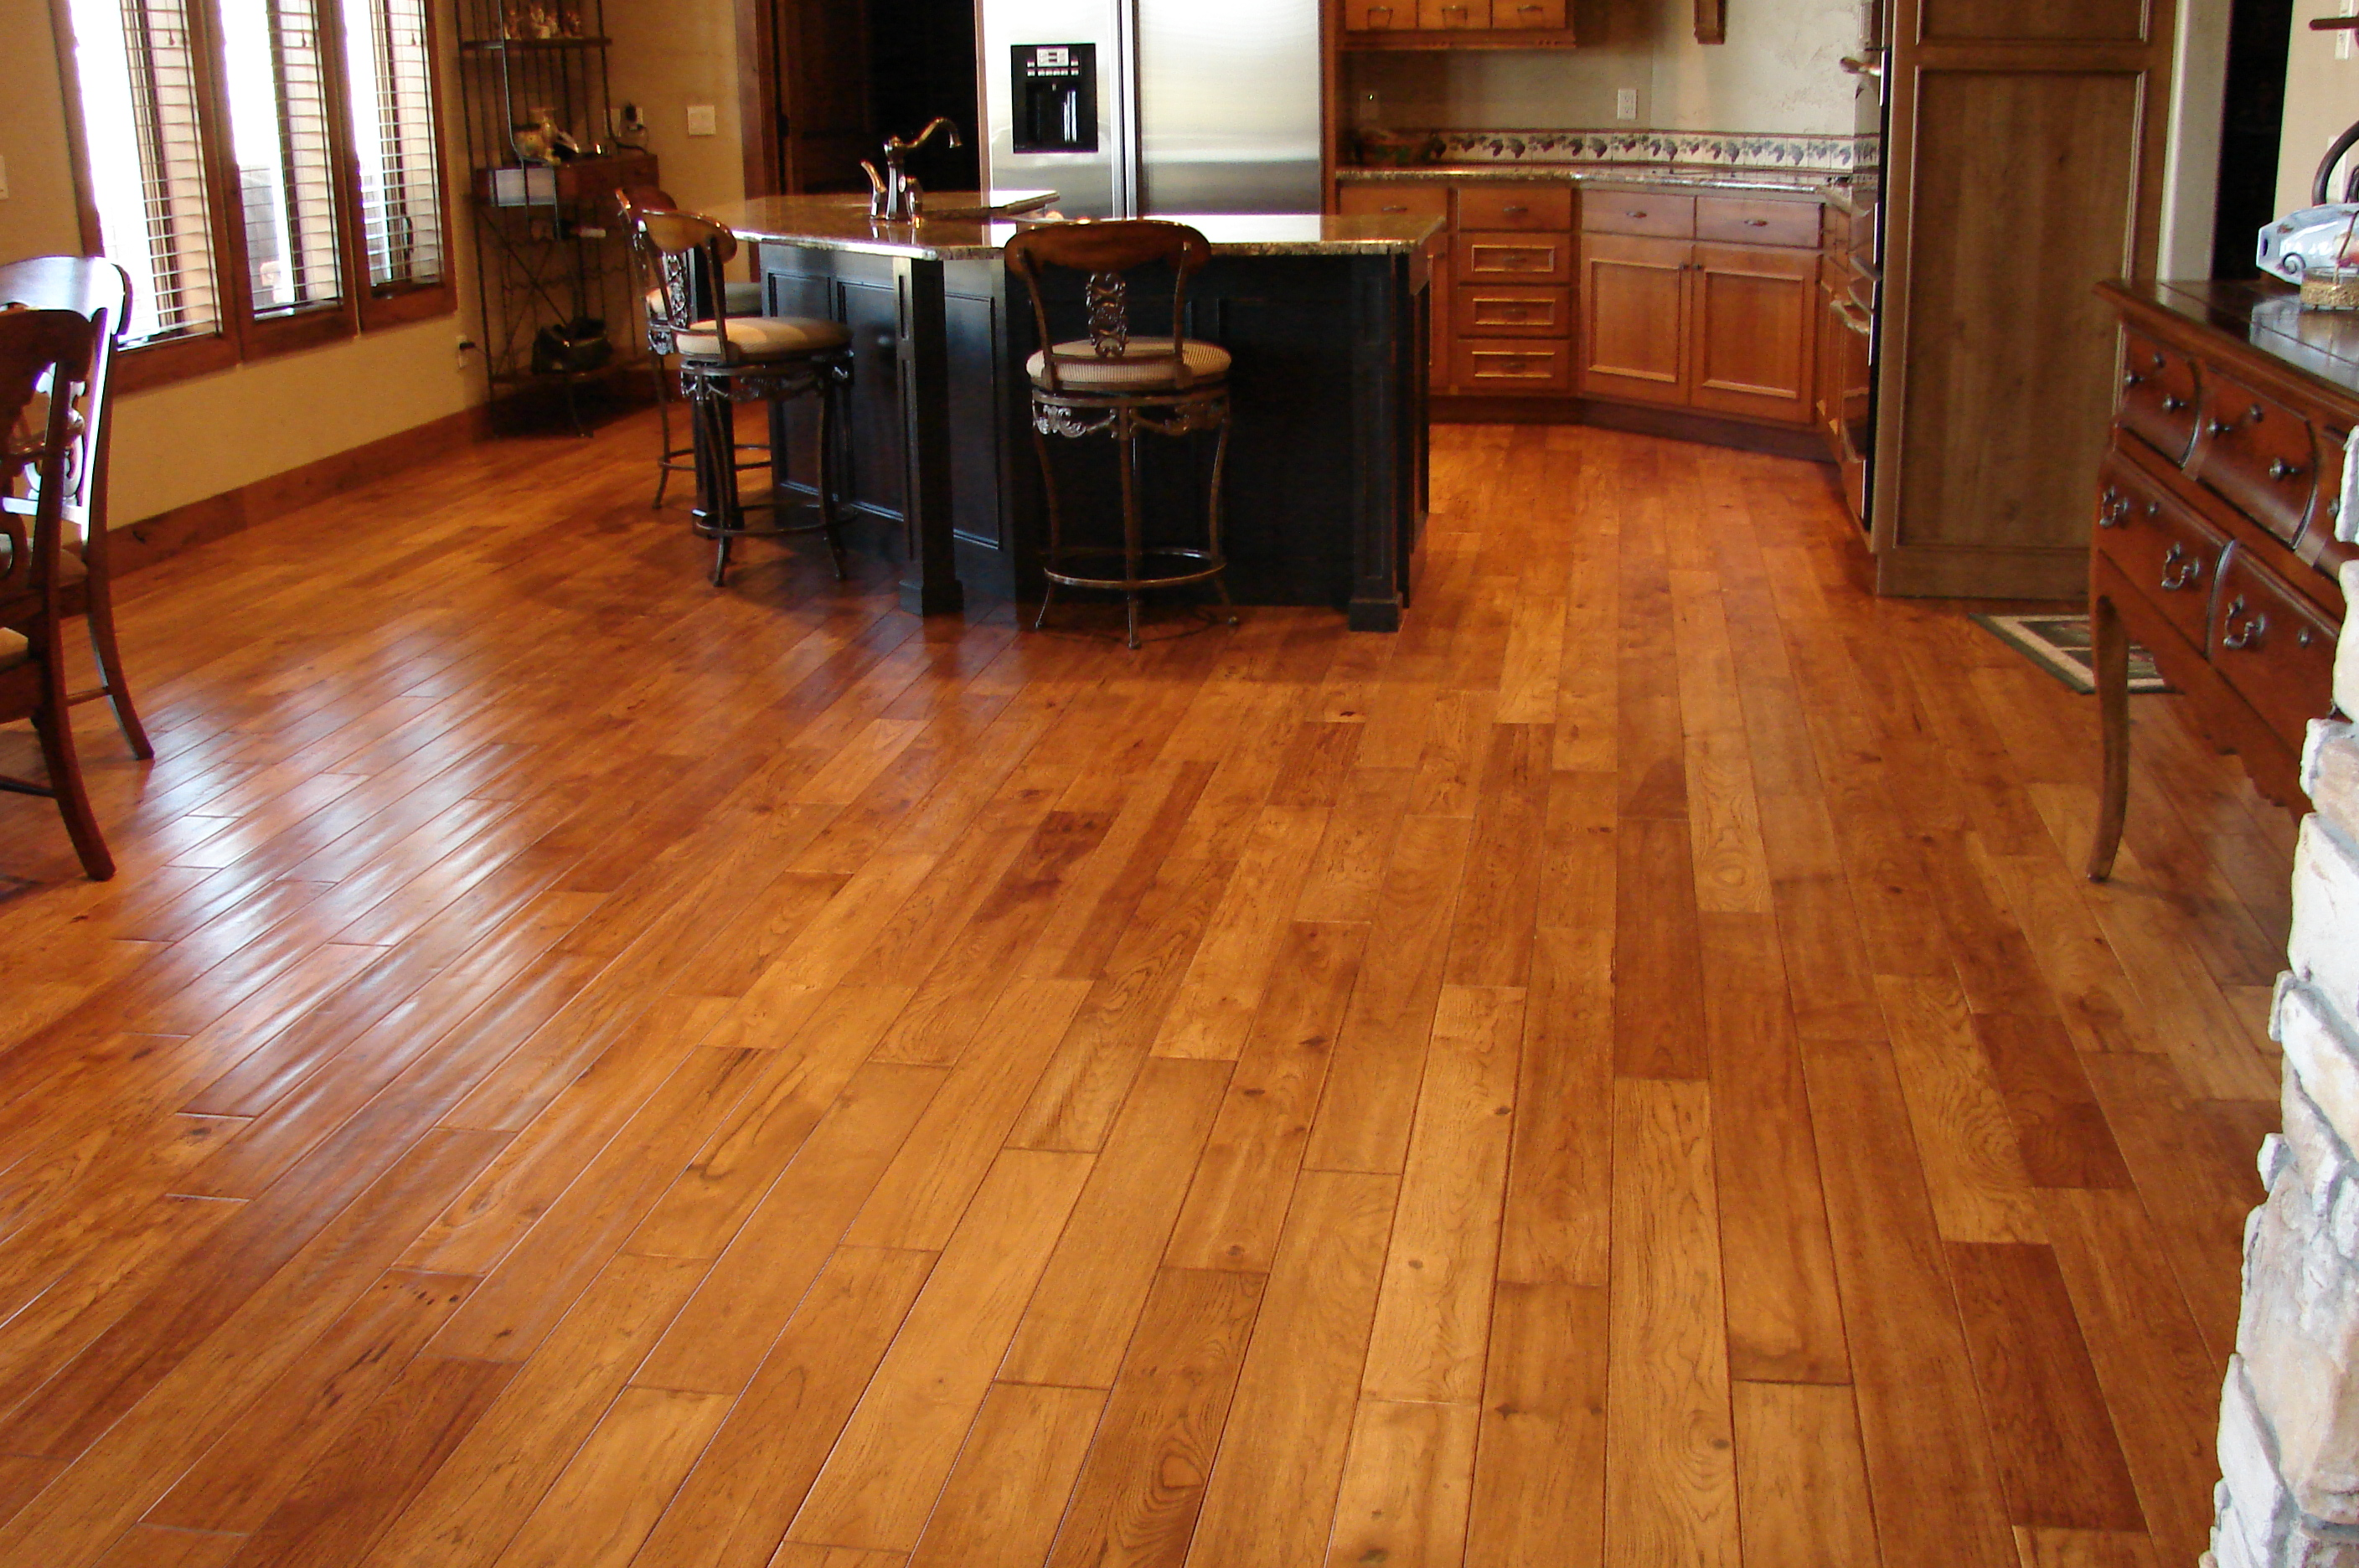 Best Vinyl Tile Flooring For Kitchen Kitchen Floor Ideas Tile Floor Designs For Flooring Vinyl Tile